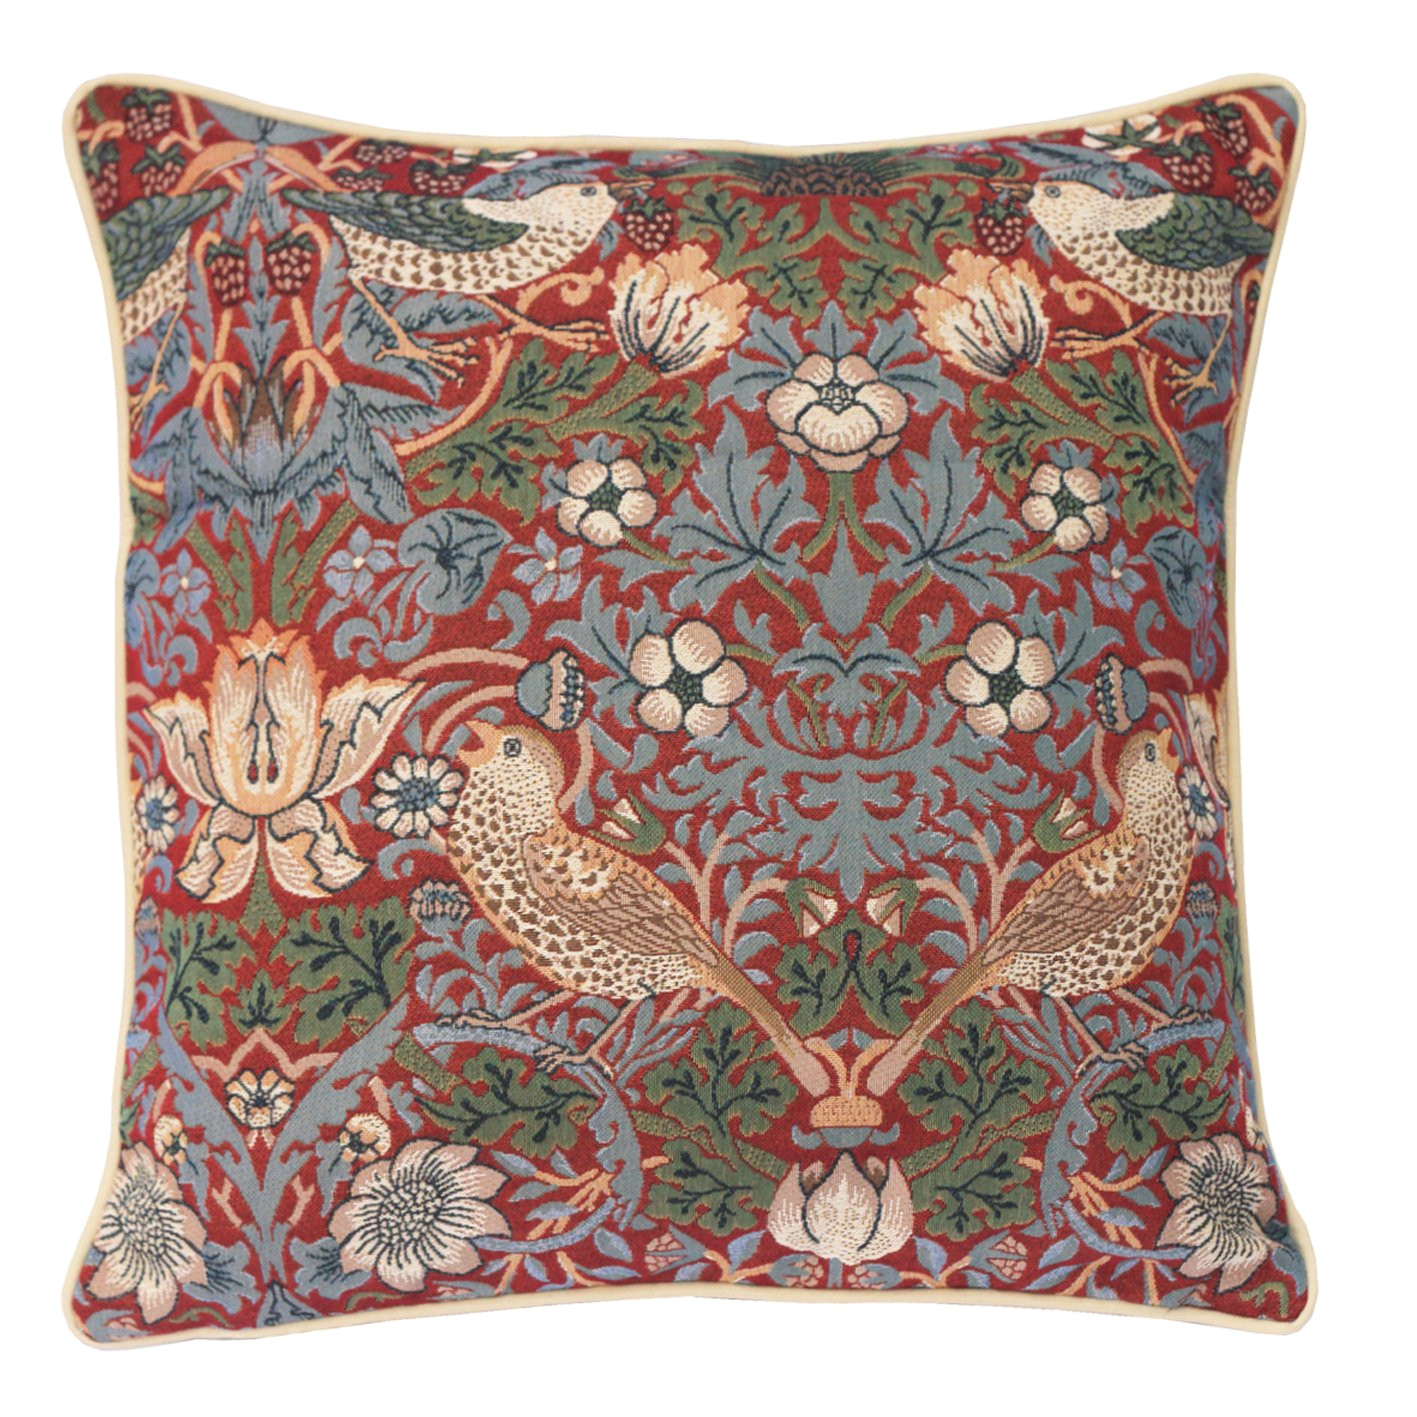 signare tapestry double sided square cushion cover william morris strawberry thief blue ccov stbl amazon co uk kitchen home